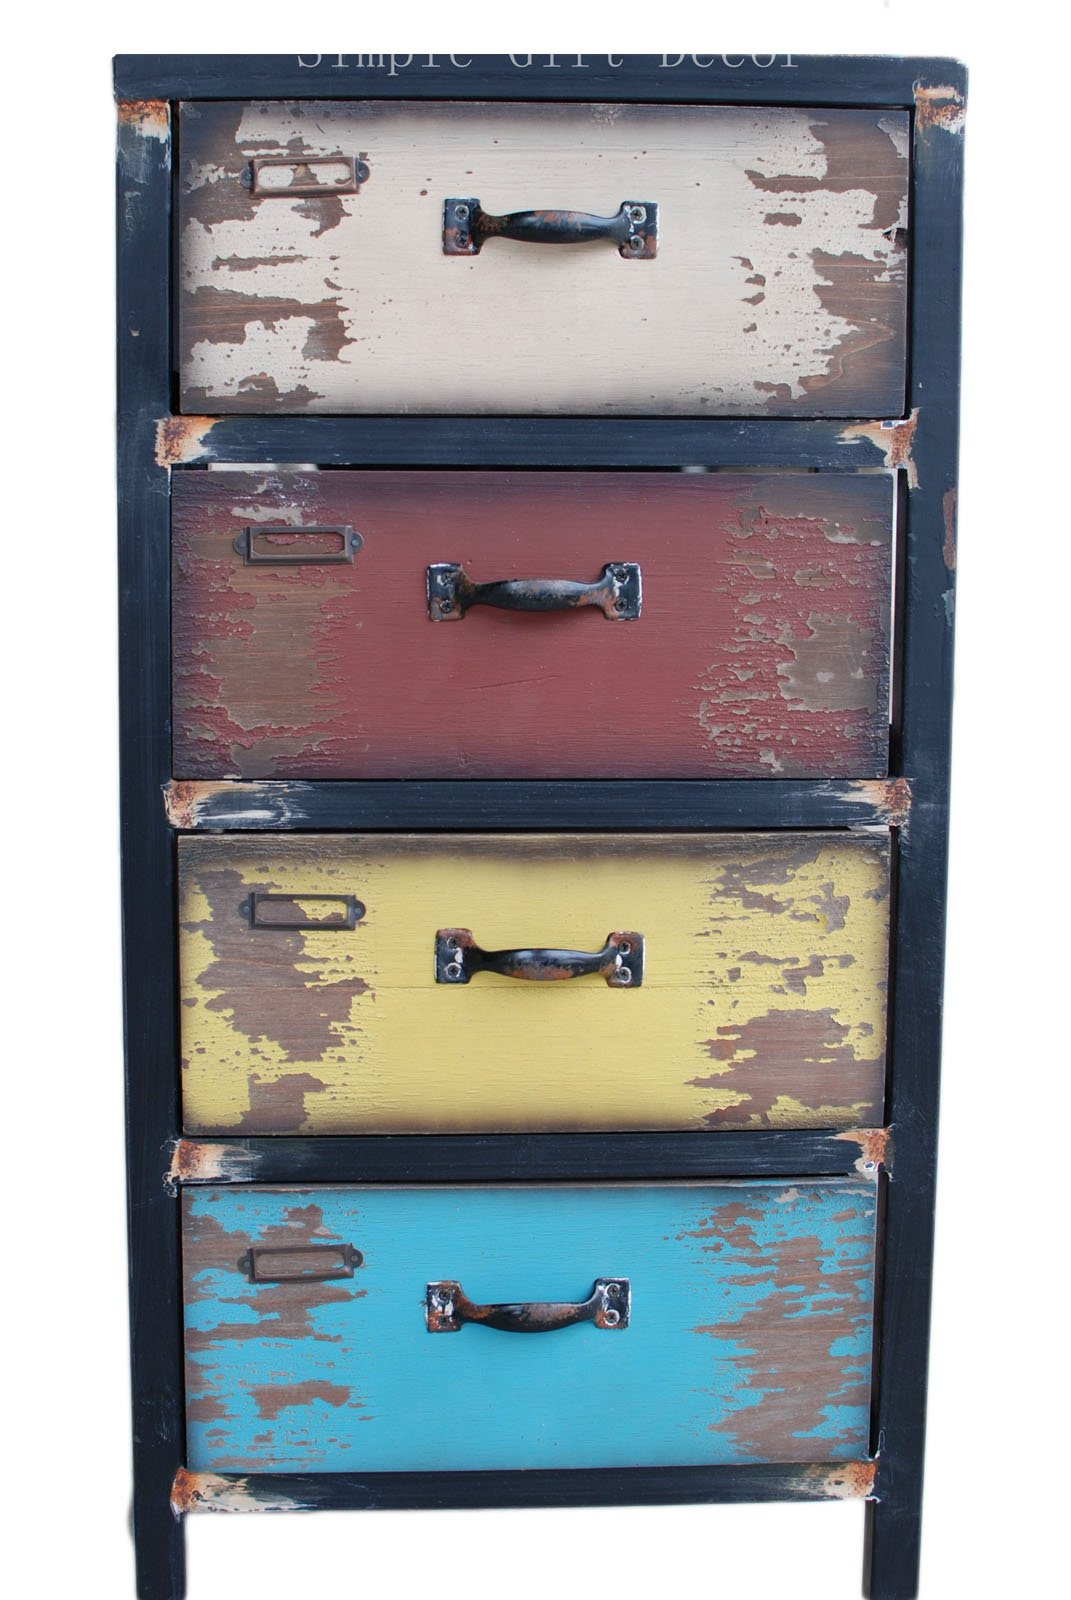 Attraction Design (31HX15.5LX11.5W Inches) Wood Antique 4-Drawer, Multicolor